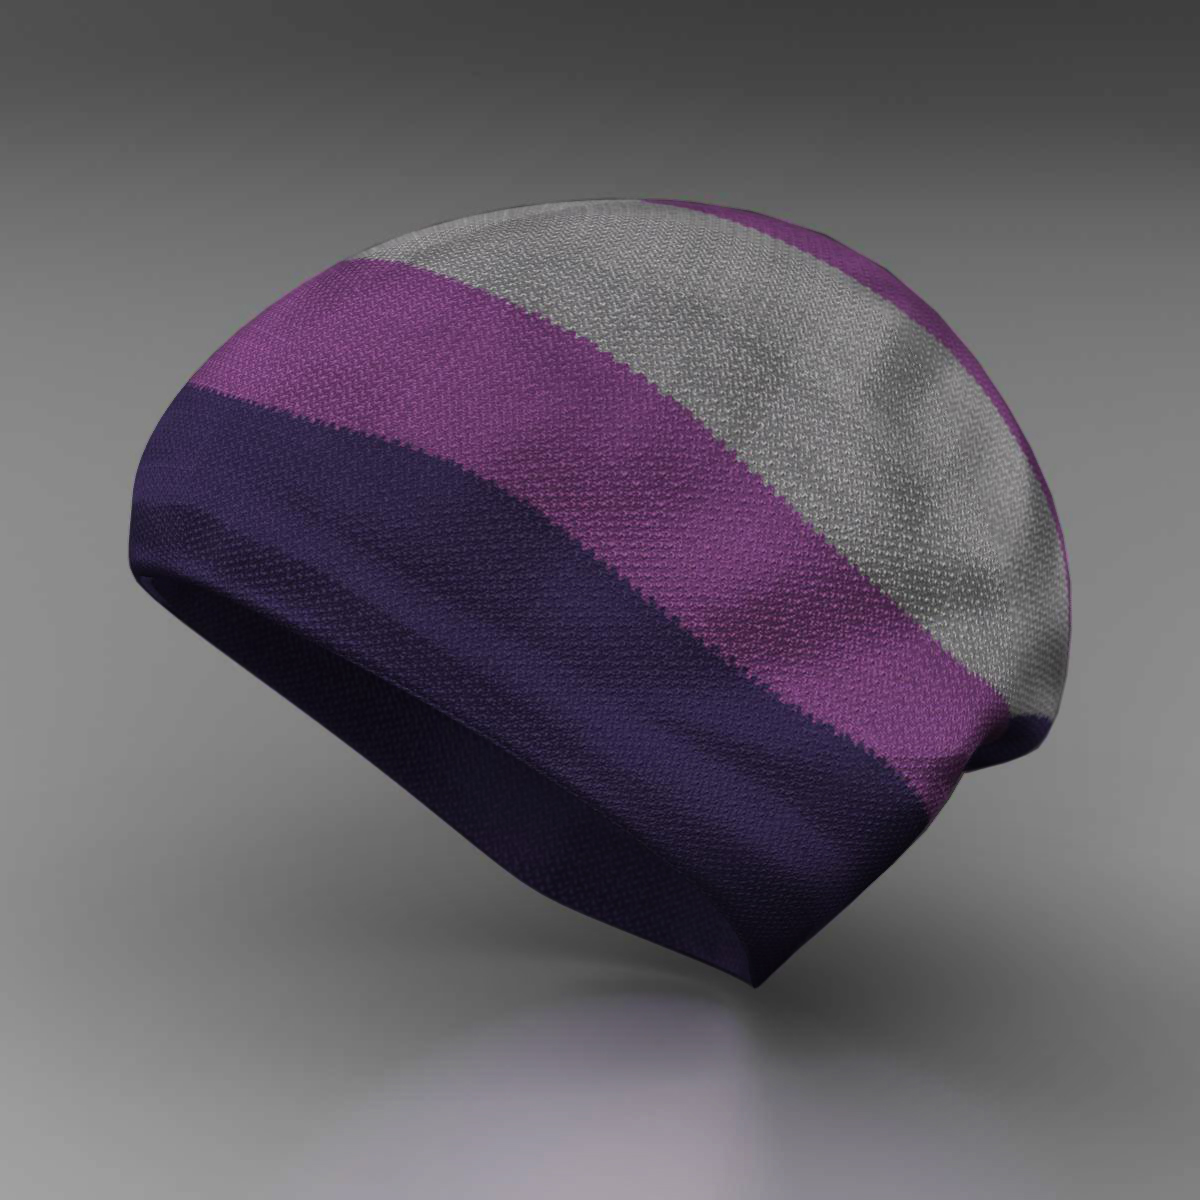 wool cap 3d model 3ds max fbx c4d ma mb obj 160731